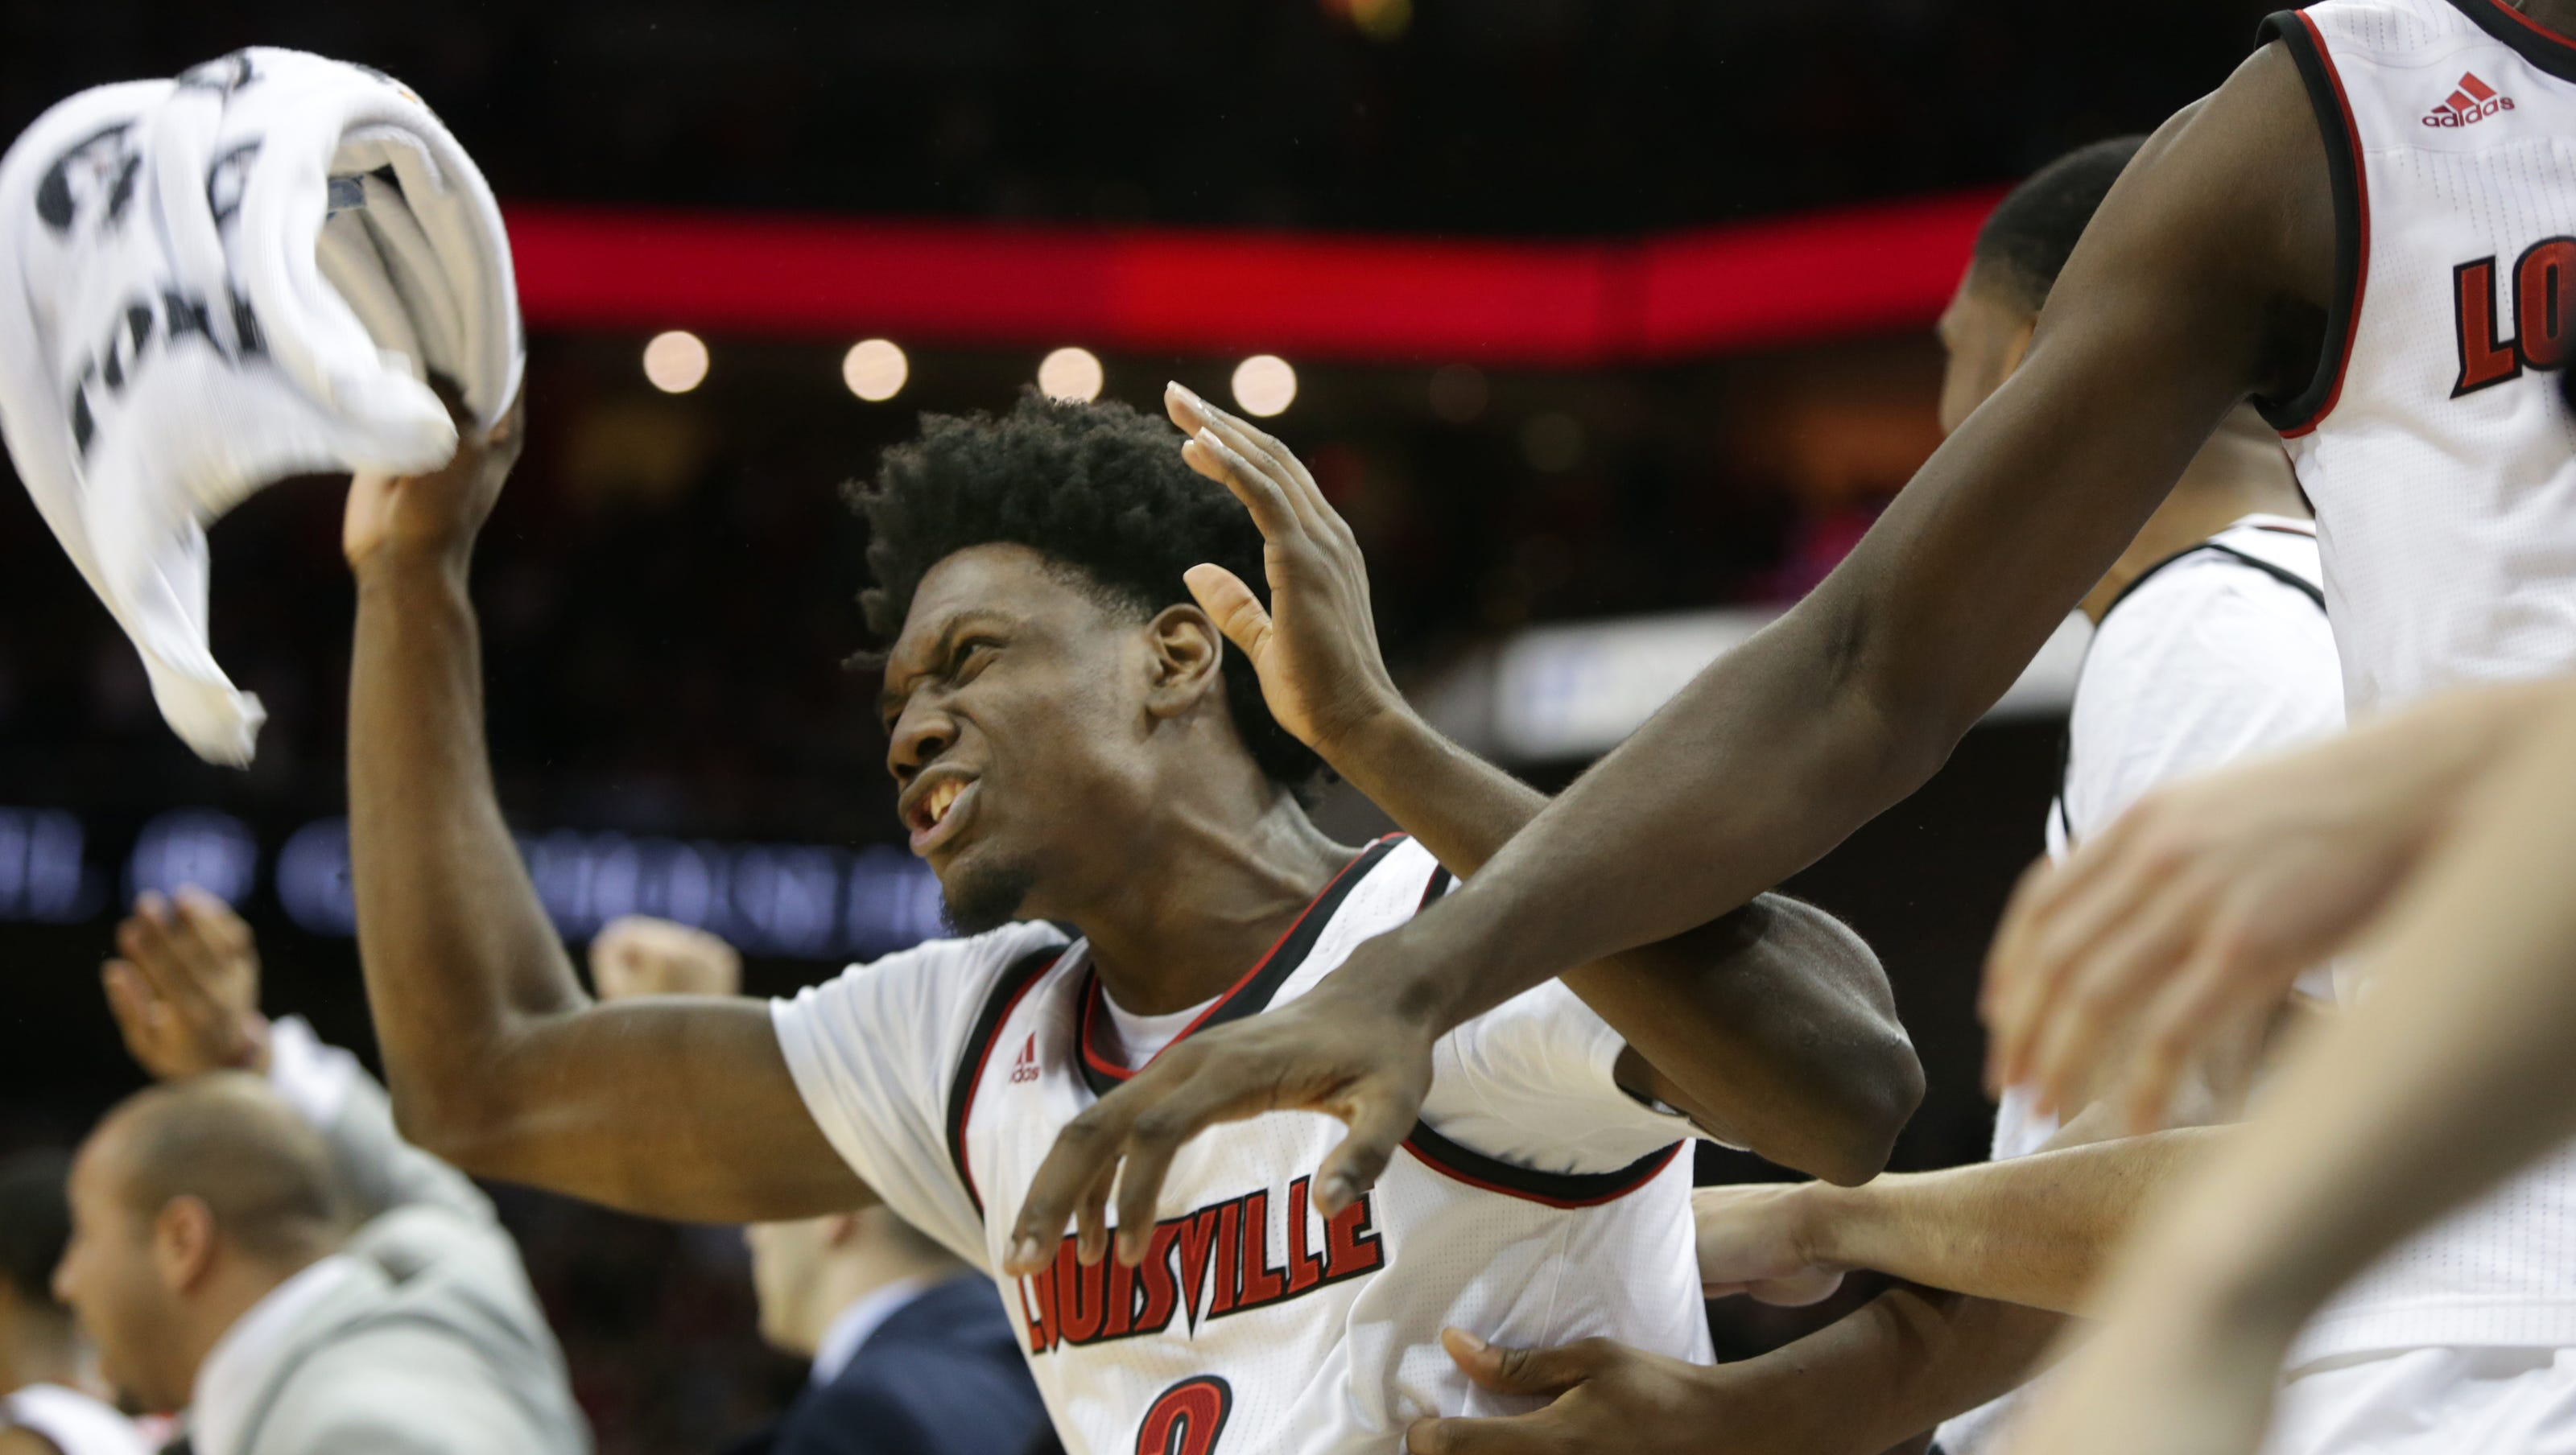 louisville to play tennessee in nit season tip-off opener